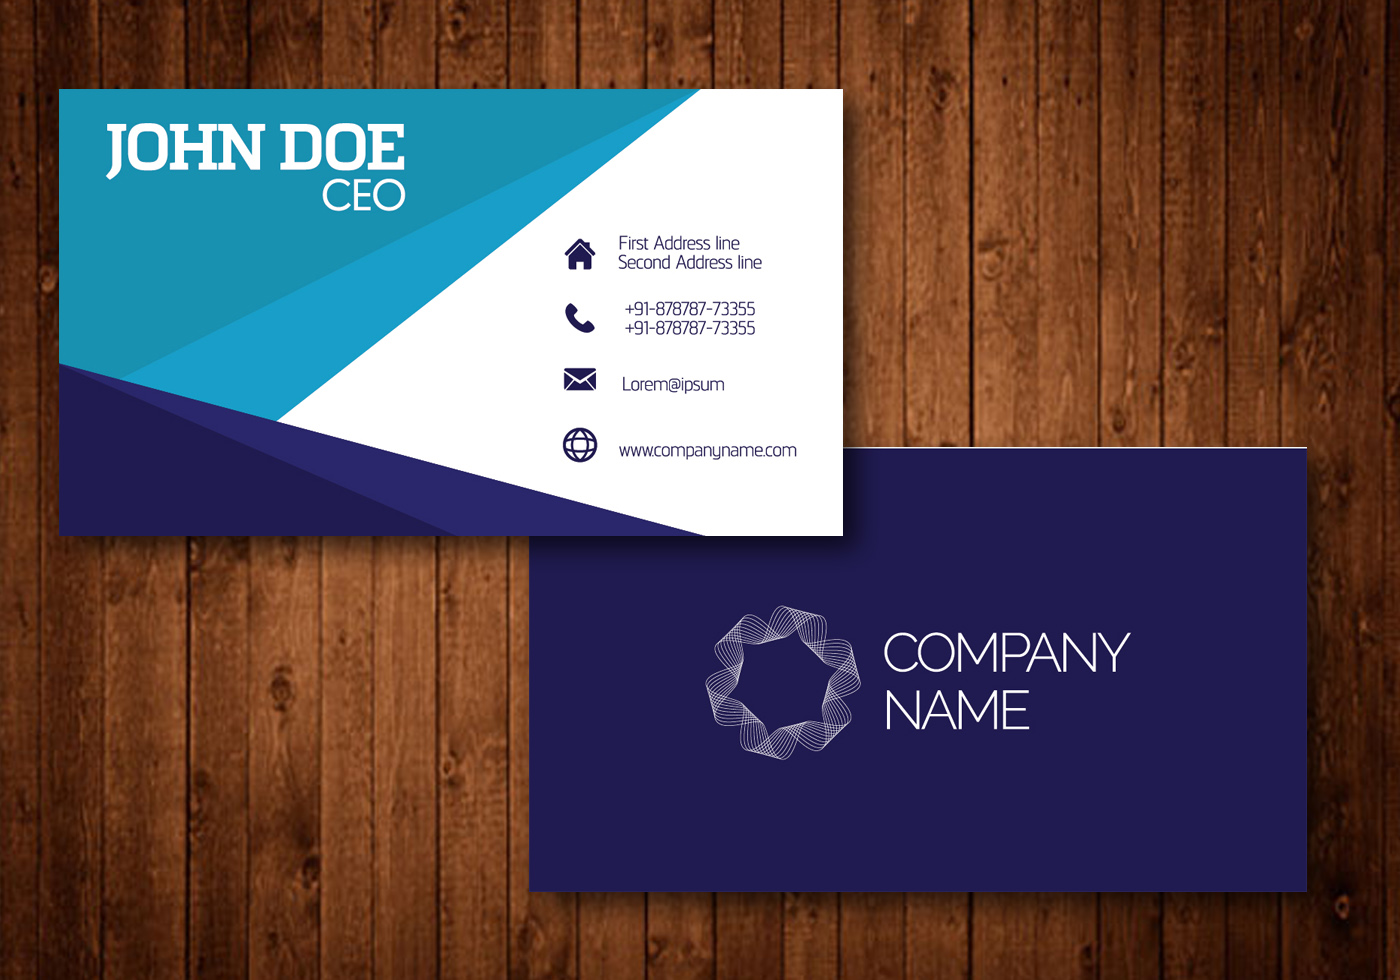 Computer visiting card design 14263 free downloads creative visiting cards magicingreecefo Image collections